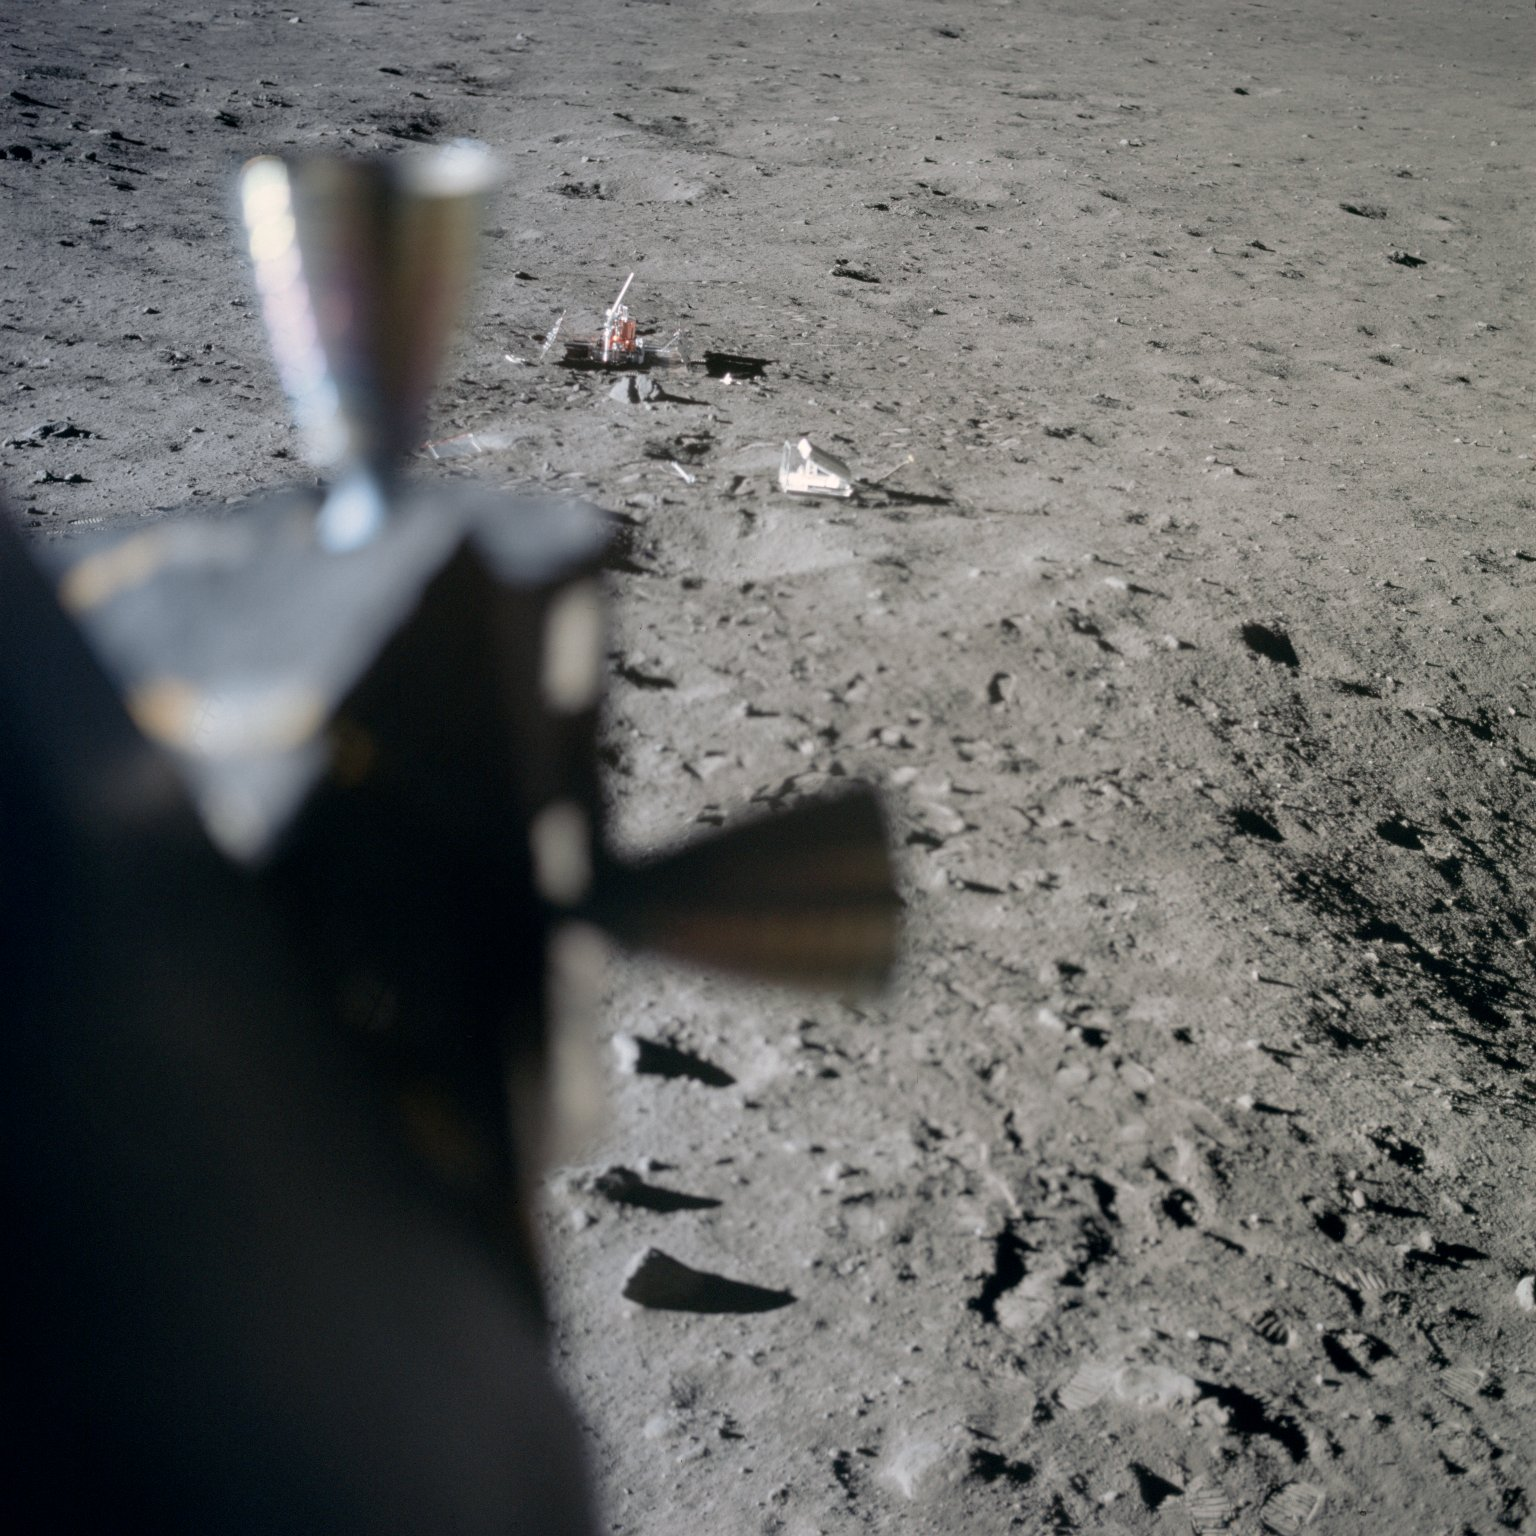 Apollo 11 Mission image - Lunar surface at Tranquility Base